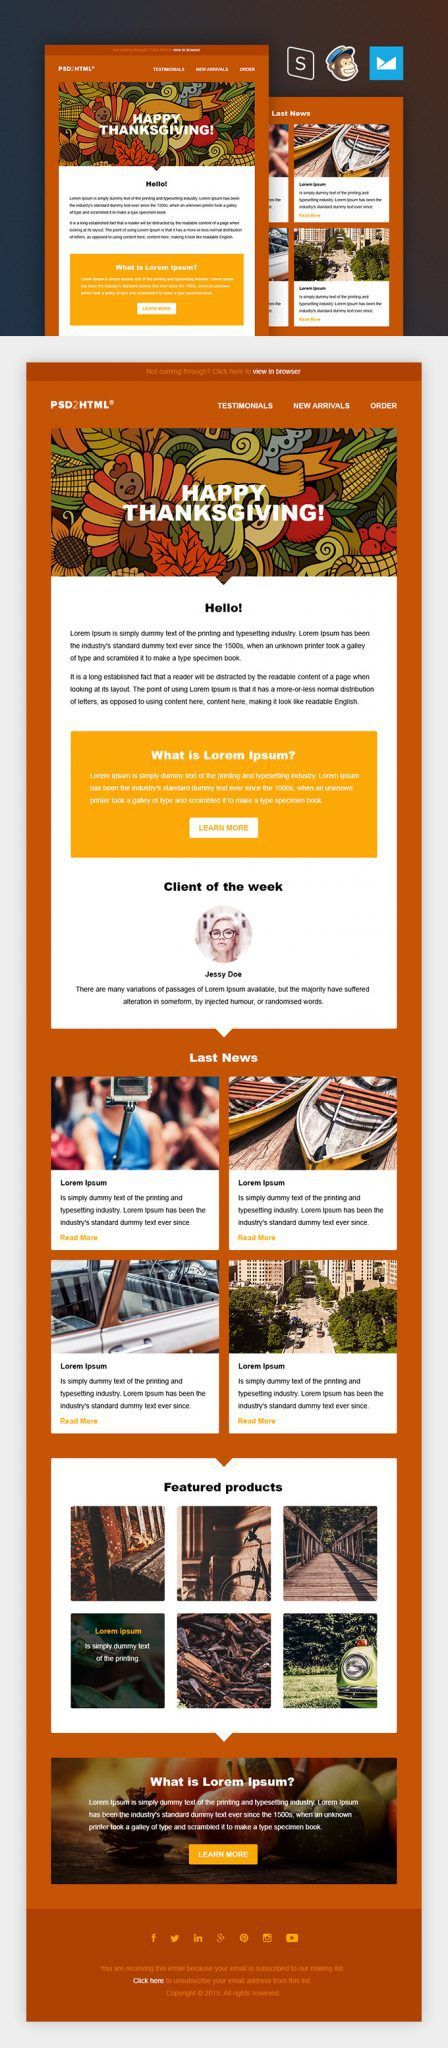 The 25 best mailchimp newsletter templates ideas on pinterest email newsletter design email for Free mailchimp newsletter templates